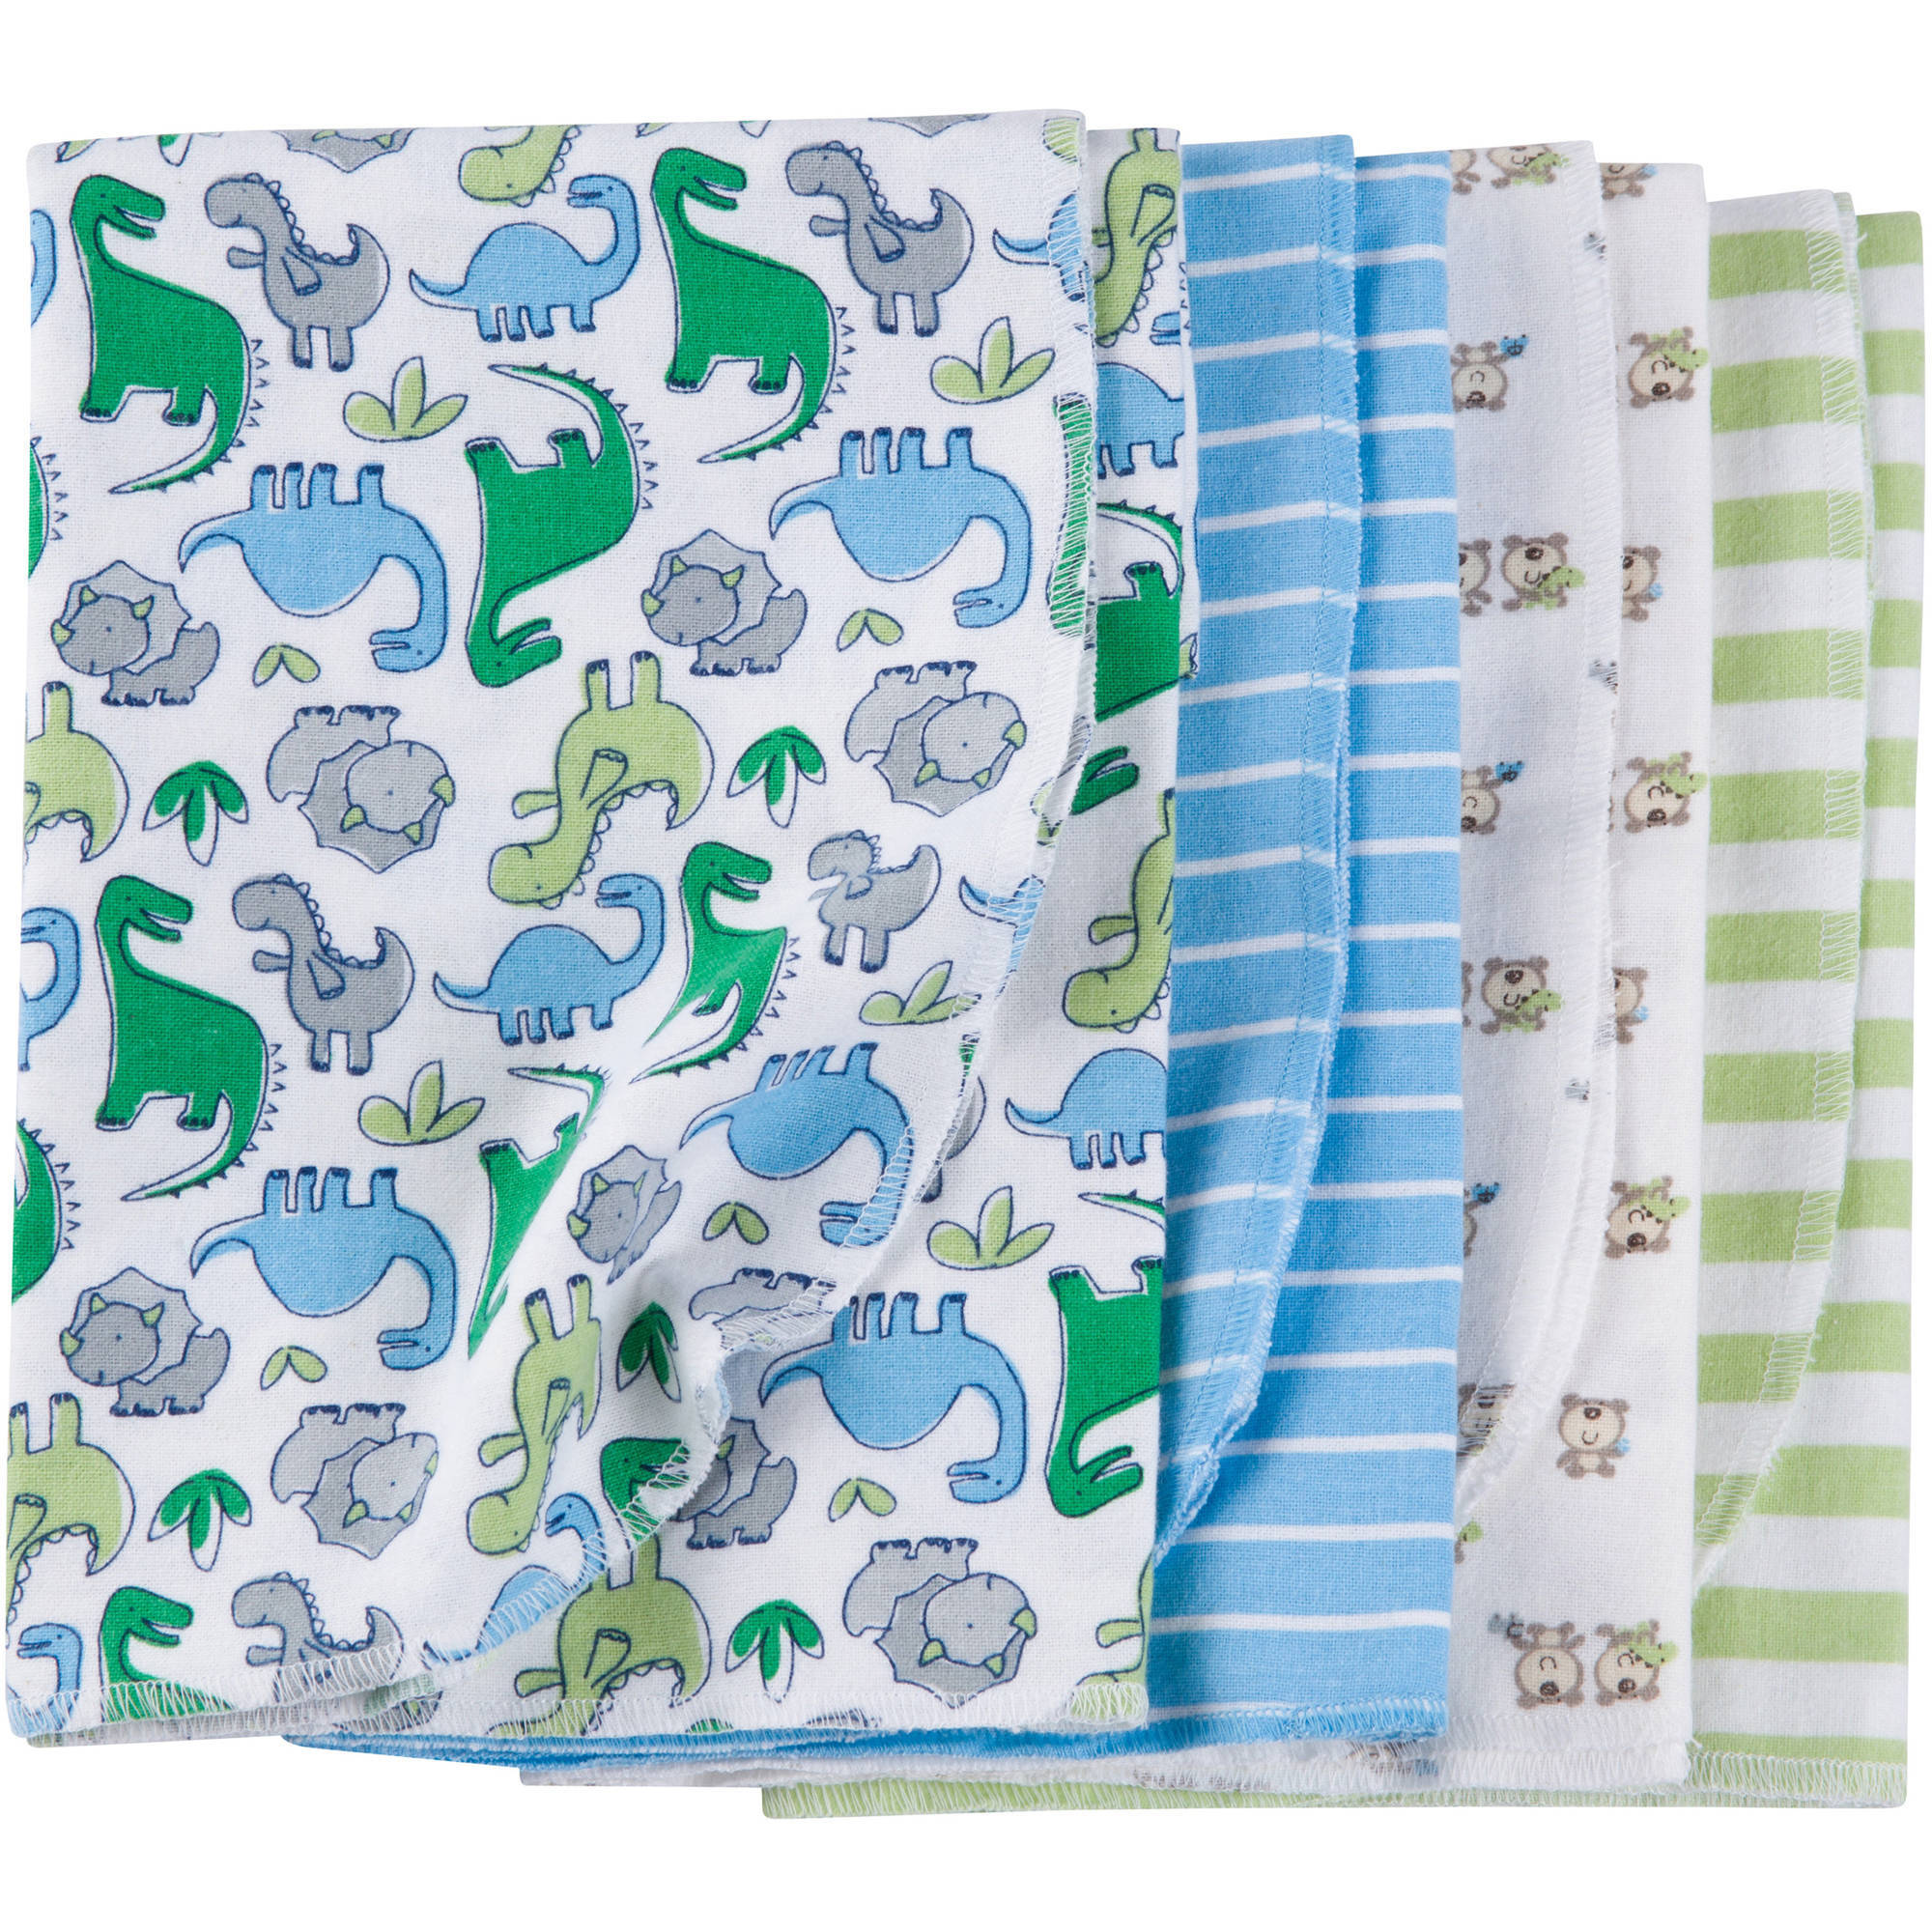 Gerber Newborn Baby Boy Flannel Receiving Blankets, 4-Pack